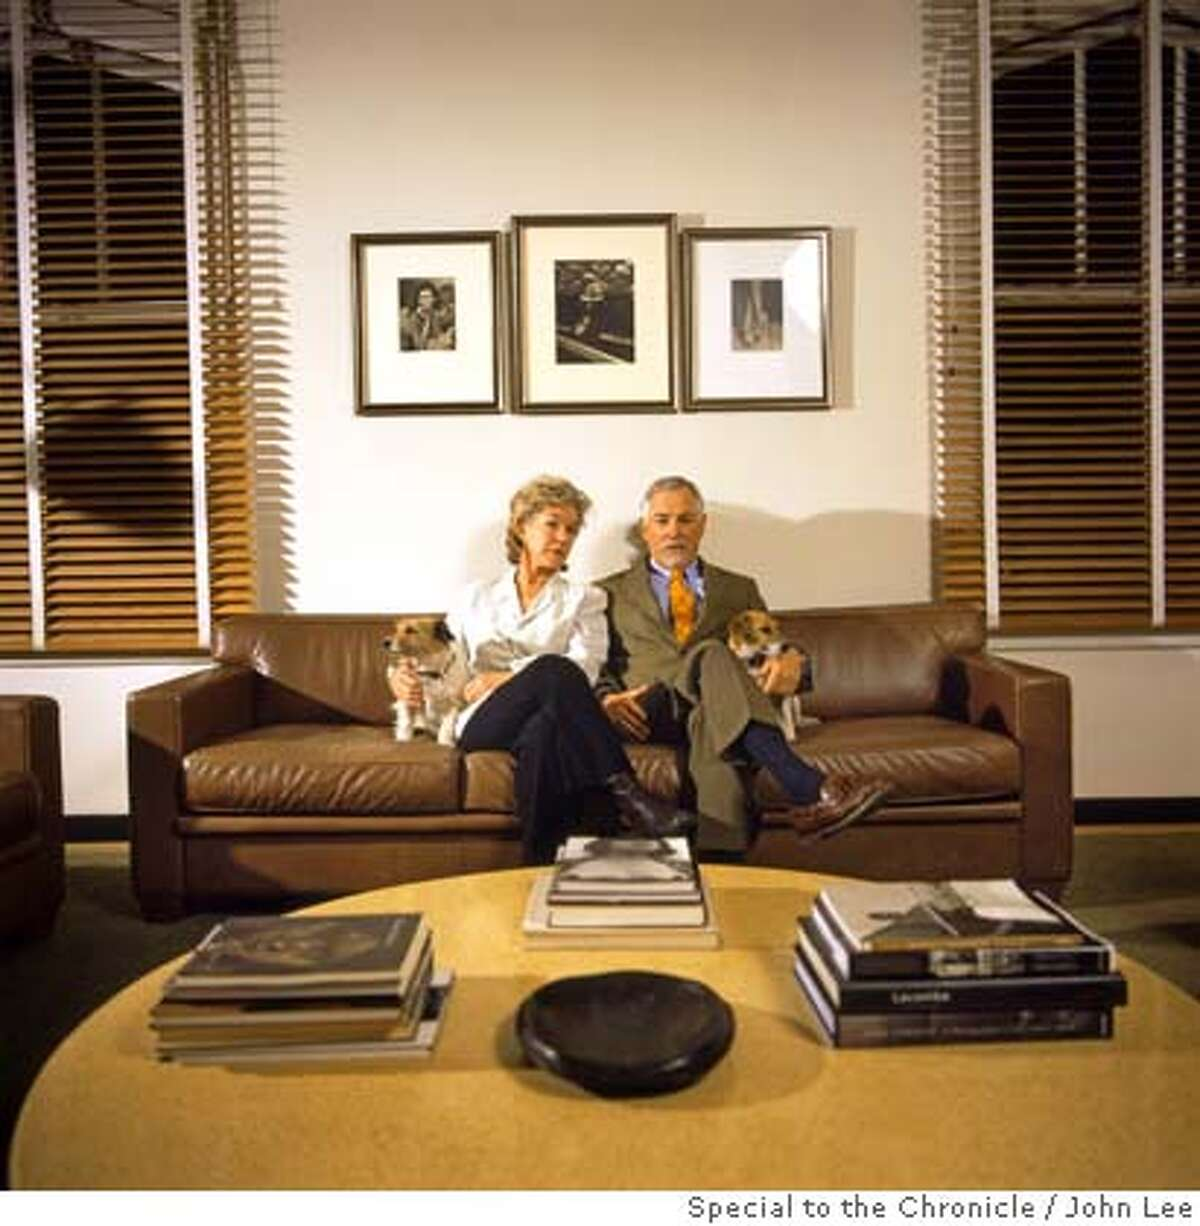 2500STEINER_BUELLS03JOHNLEE.JPG Susie Tompkins Buell, left, and he husband Mark Buell, sitting with their two dogs in the living room of their 12th floor penthouse condo at 2500 Steiner in San Francisco's Pacific Heights. For Sam Whiting story on 2500 Steiner. By JOHN LEE/SPECIAL TO THE CHRONICLE